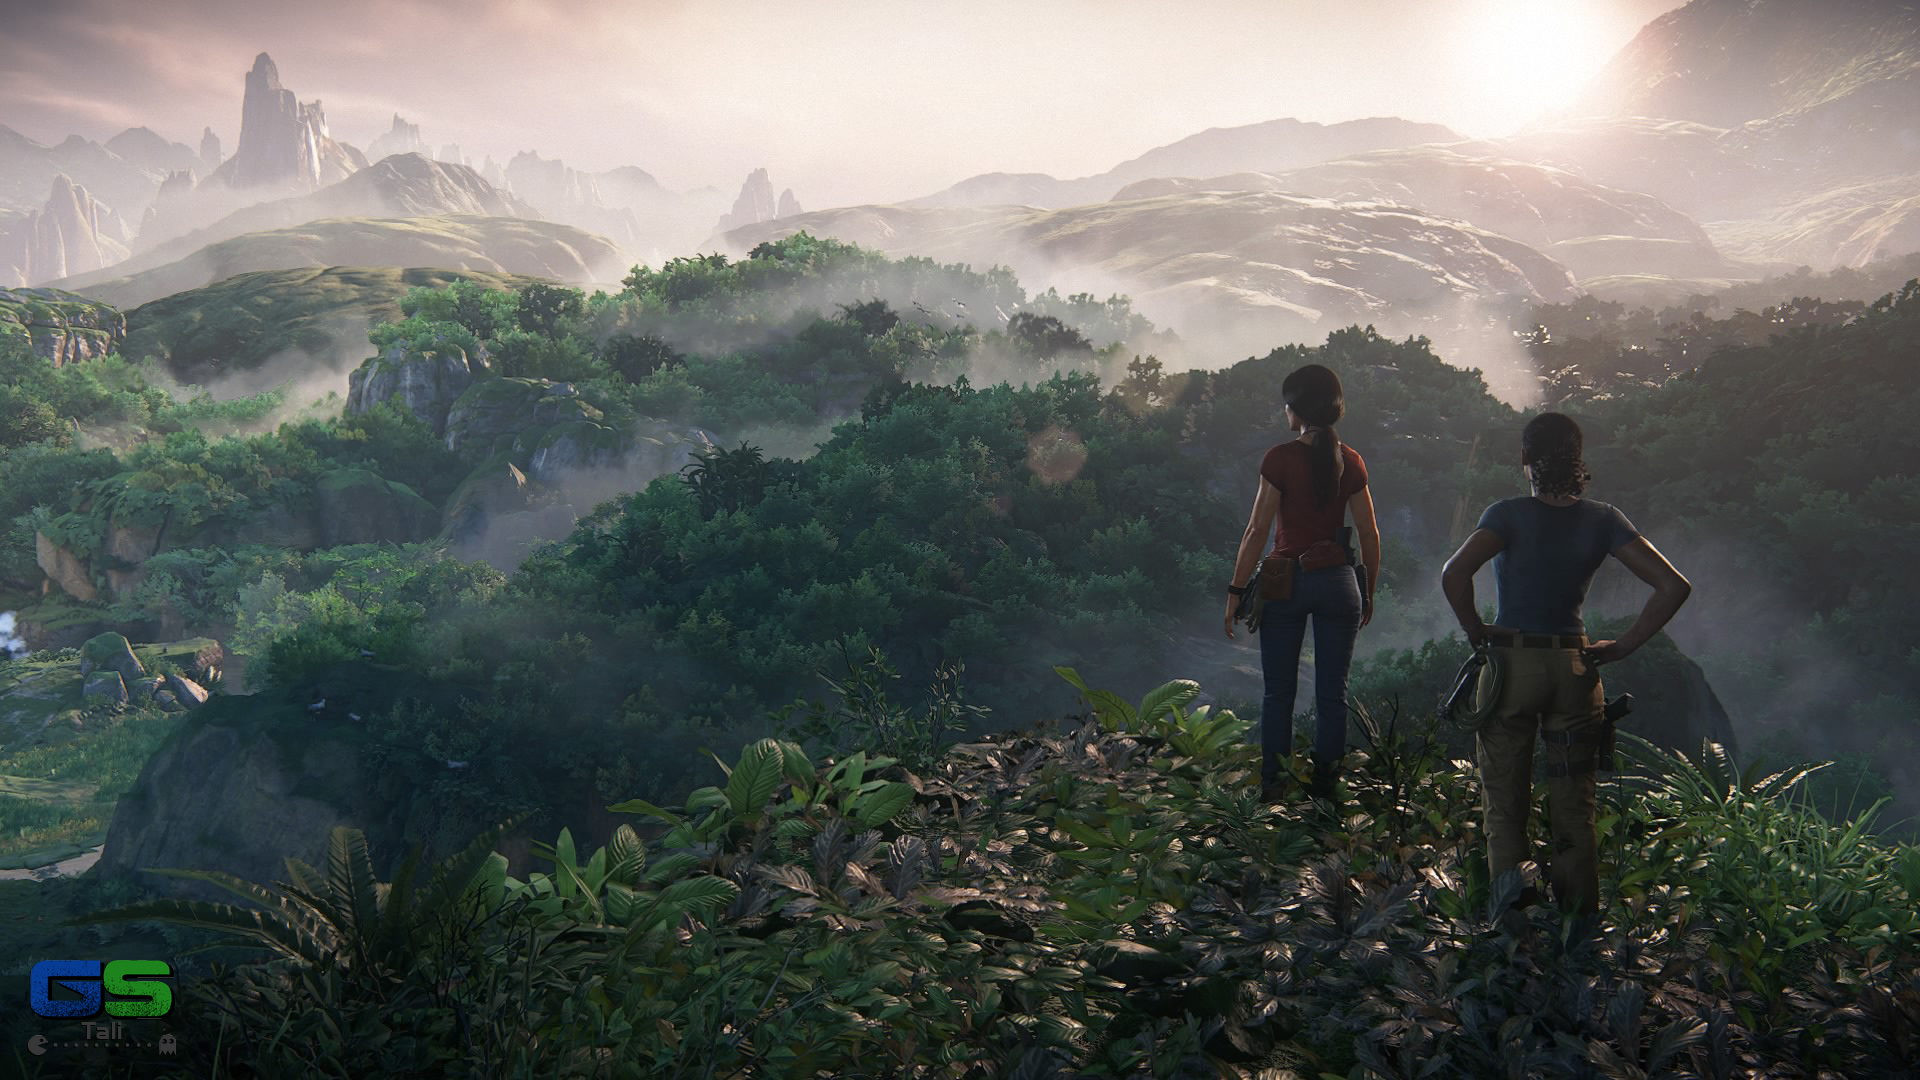 Uncharted: L'eredità Perduta - Ghati occidentali